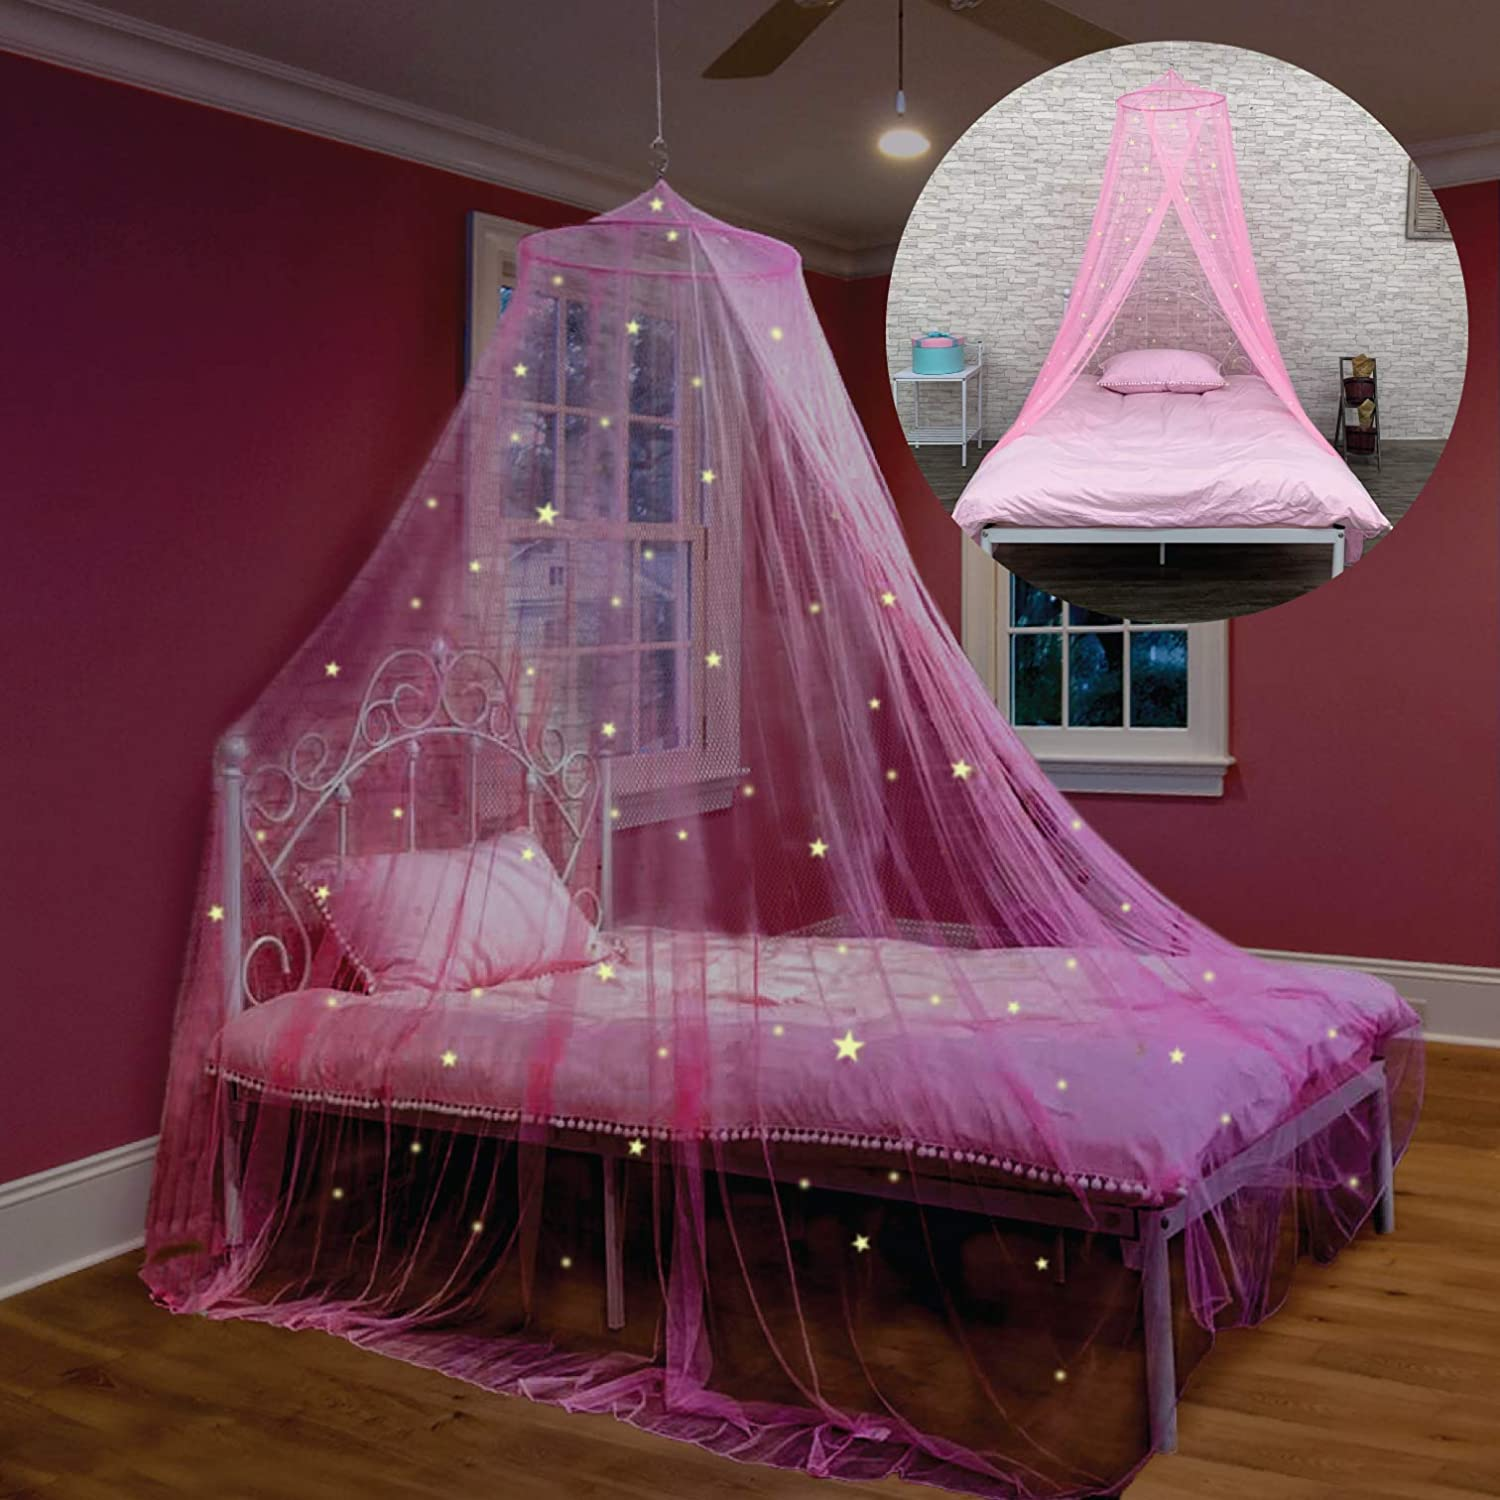 Bed Canopy with Glow in The Dark Stars for Girls, Kids and Babies, Anti Mosquito Net Use to Cover The Baby Crib, Kid Bed, Girls Bed Or Full Size Bed, Fire Retardant Fabric